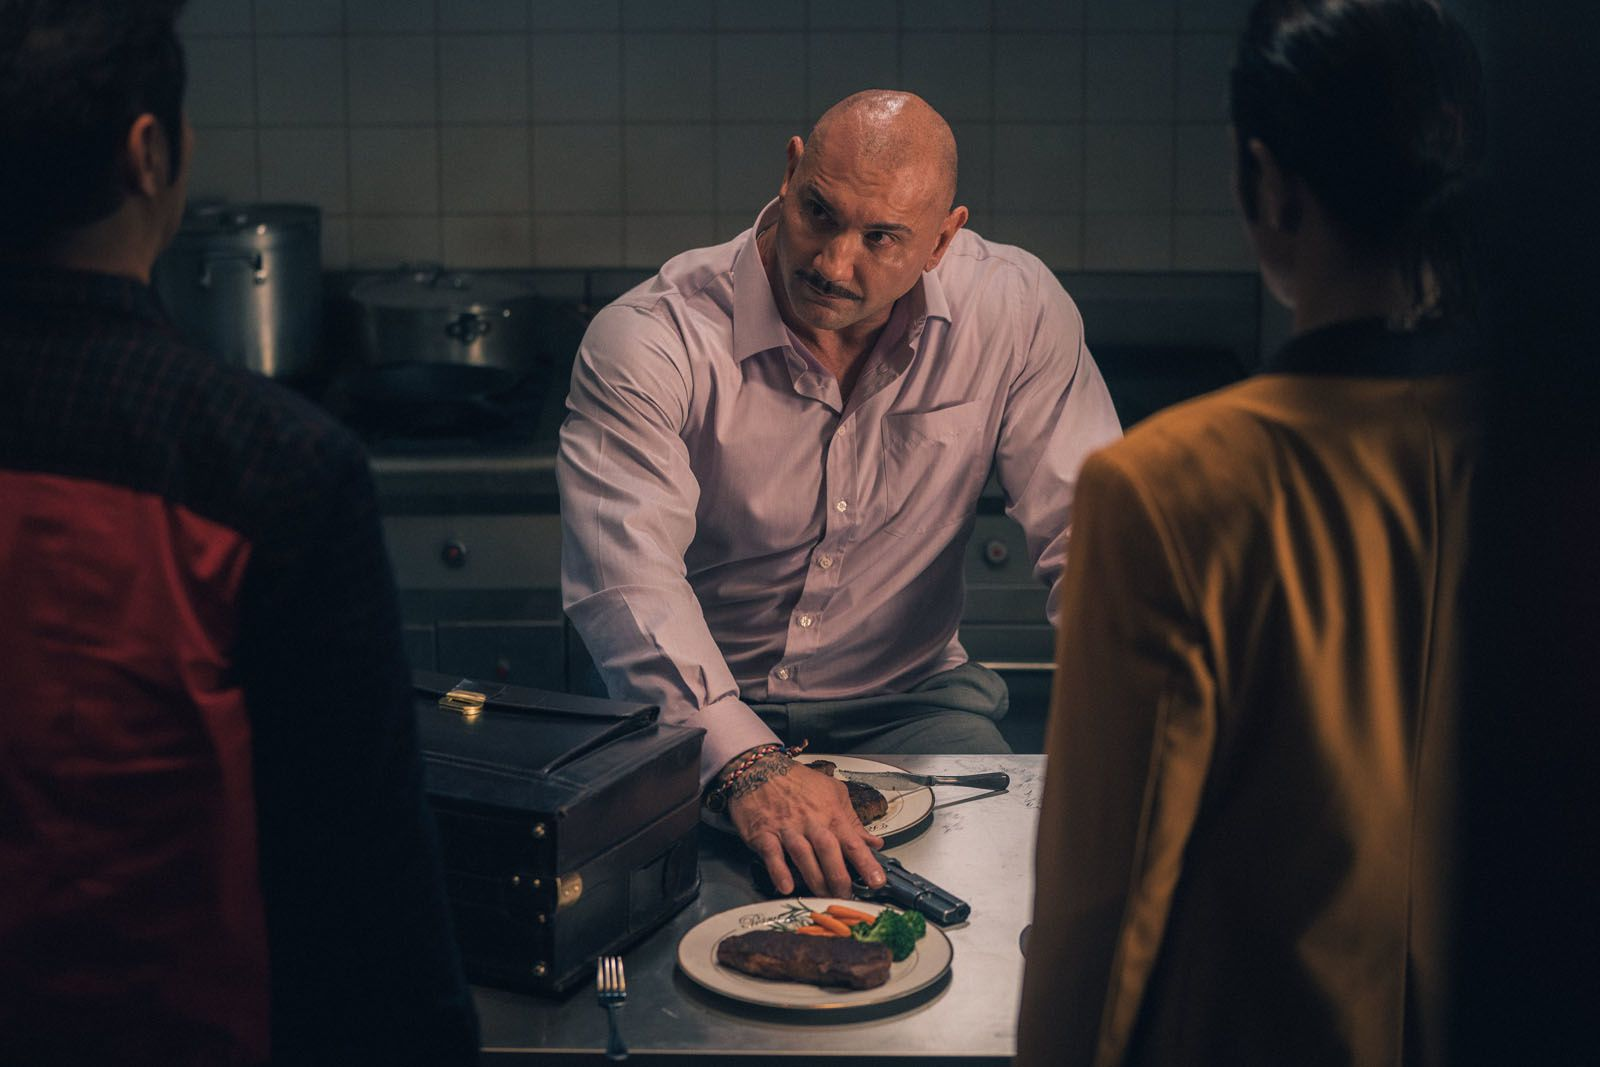 IP Man Legacy : Master Z (BANDE-ANNONCE) avec Michelle Yeoh, Dave Bautista, Tony Jaa - En DVD et Blu-Ray le 17 avril 2019